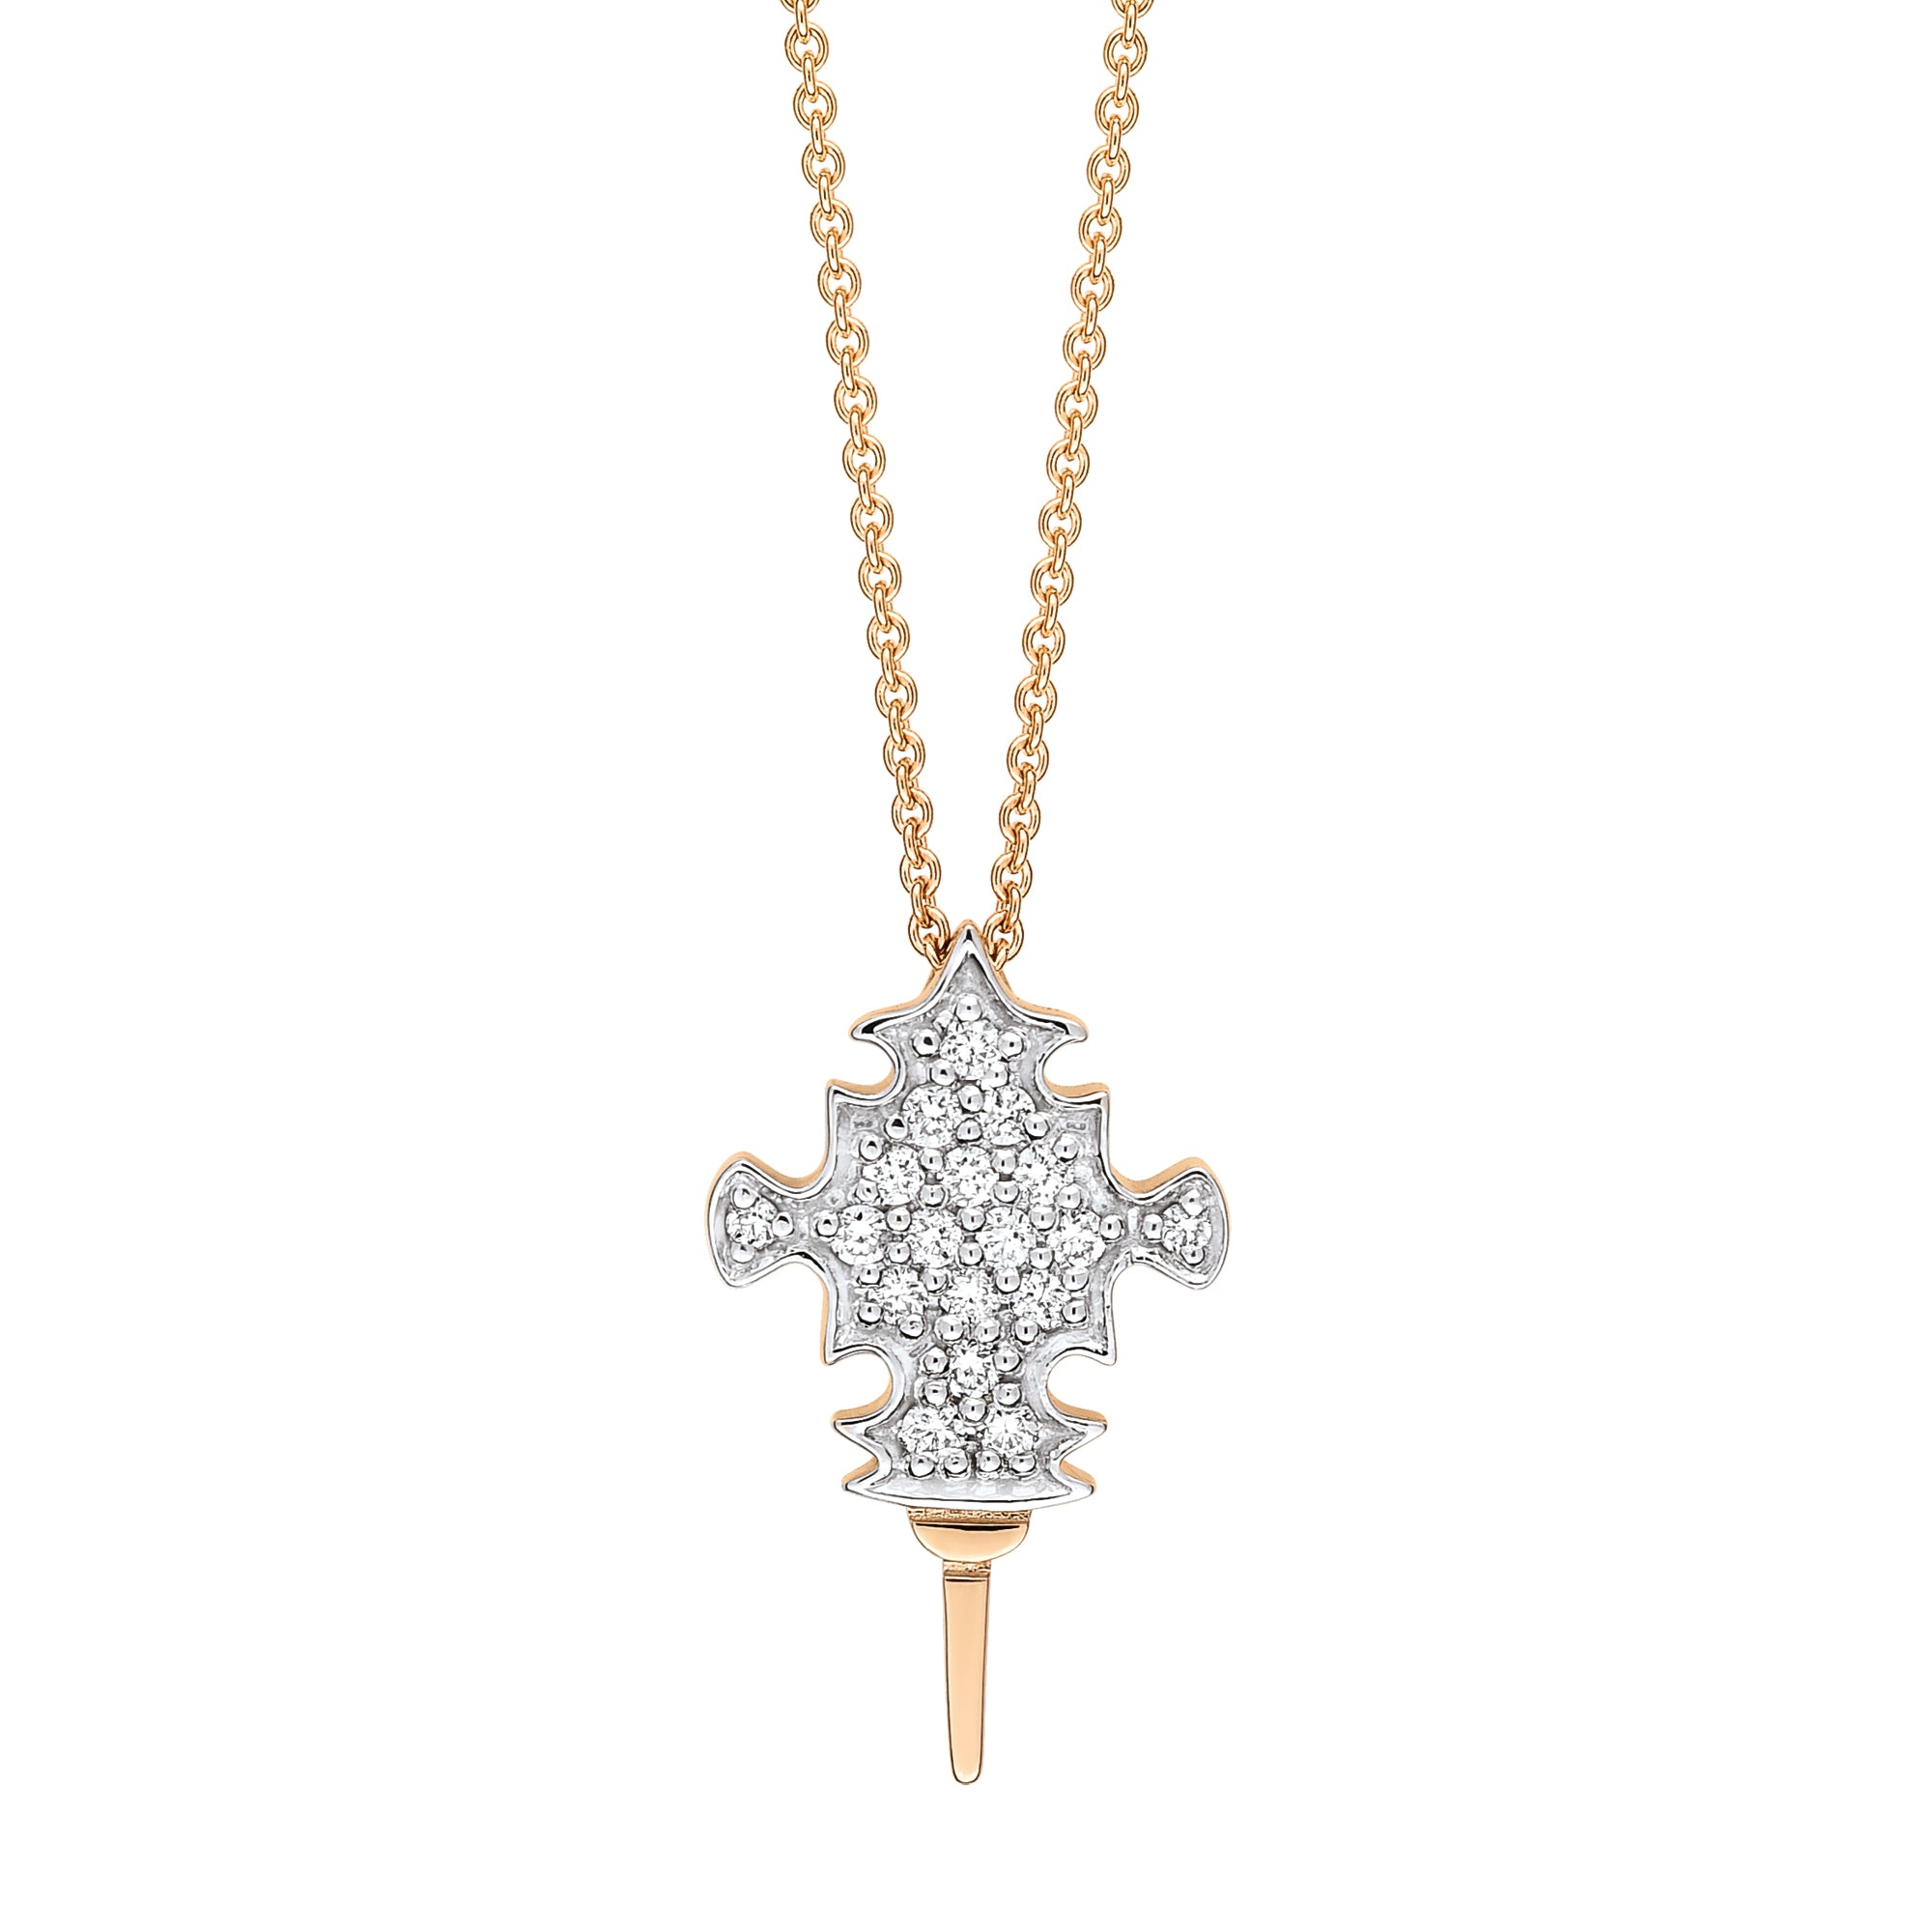 Diamond Tanger necklace